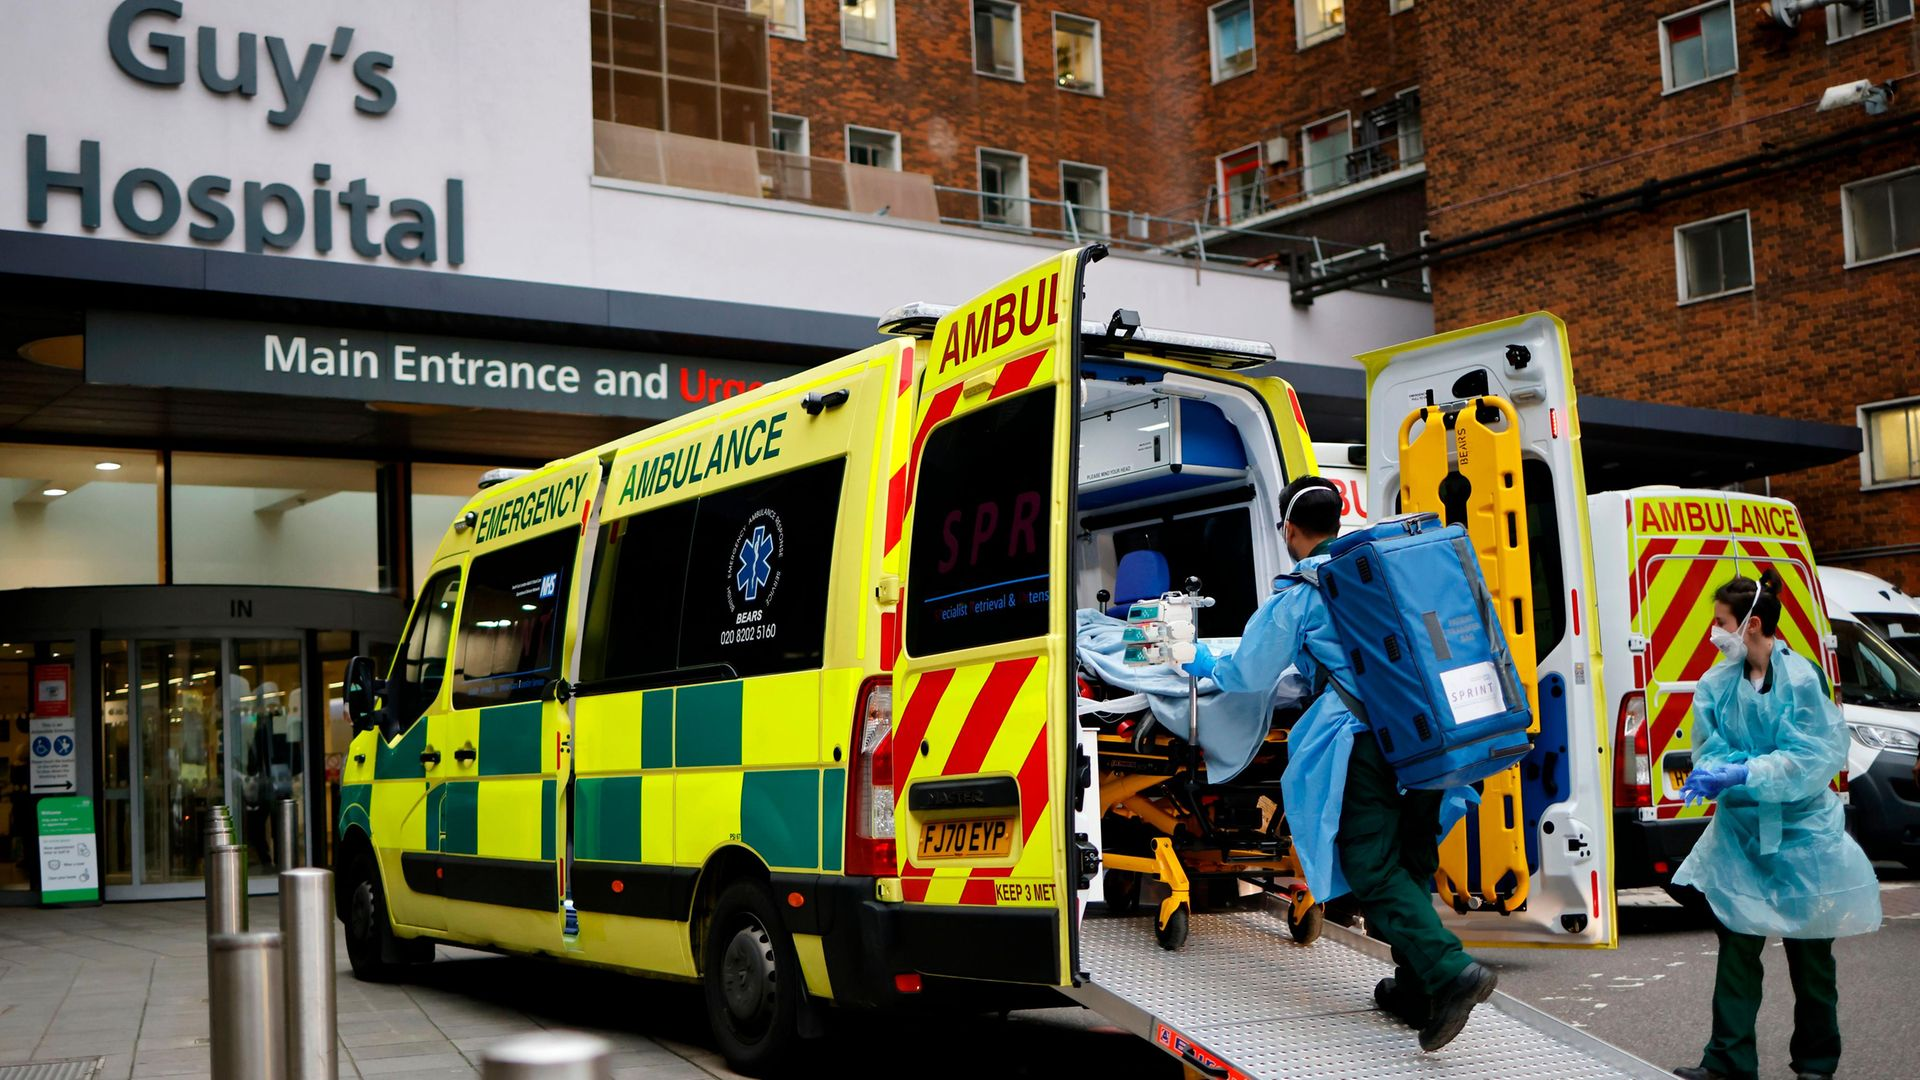 A patient on a gurney is taken from an ambulance parked outside Guy's Hospital in London - Credit: AFP via Getty Images